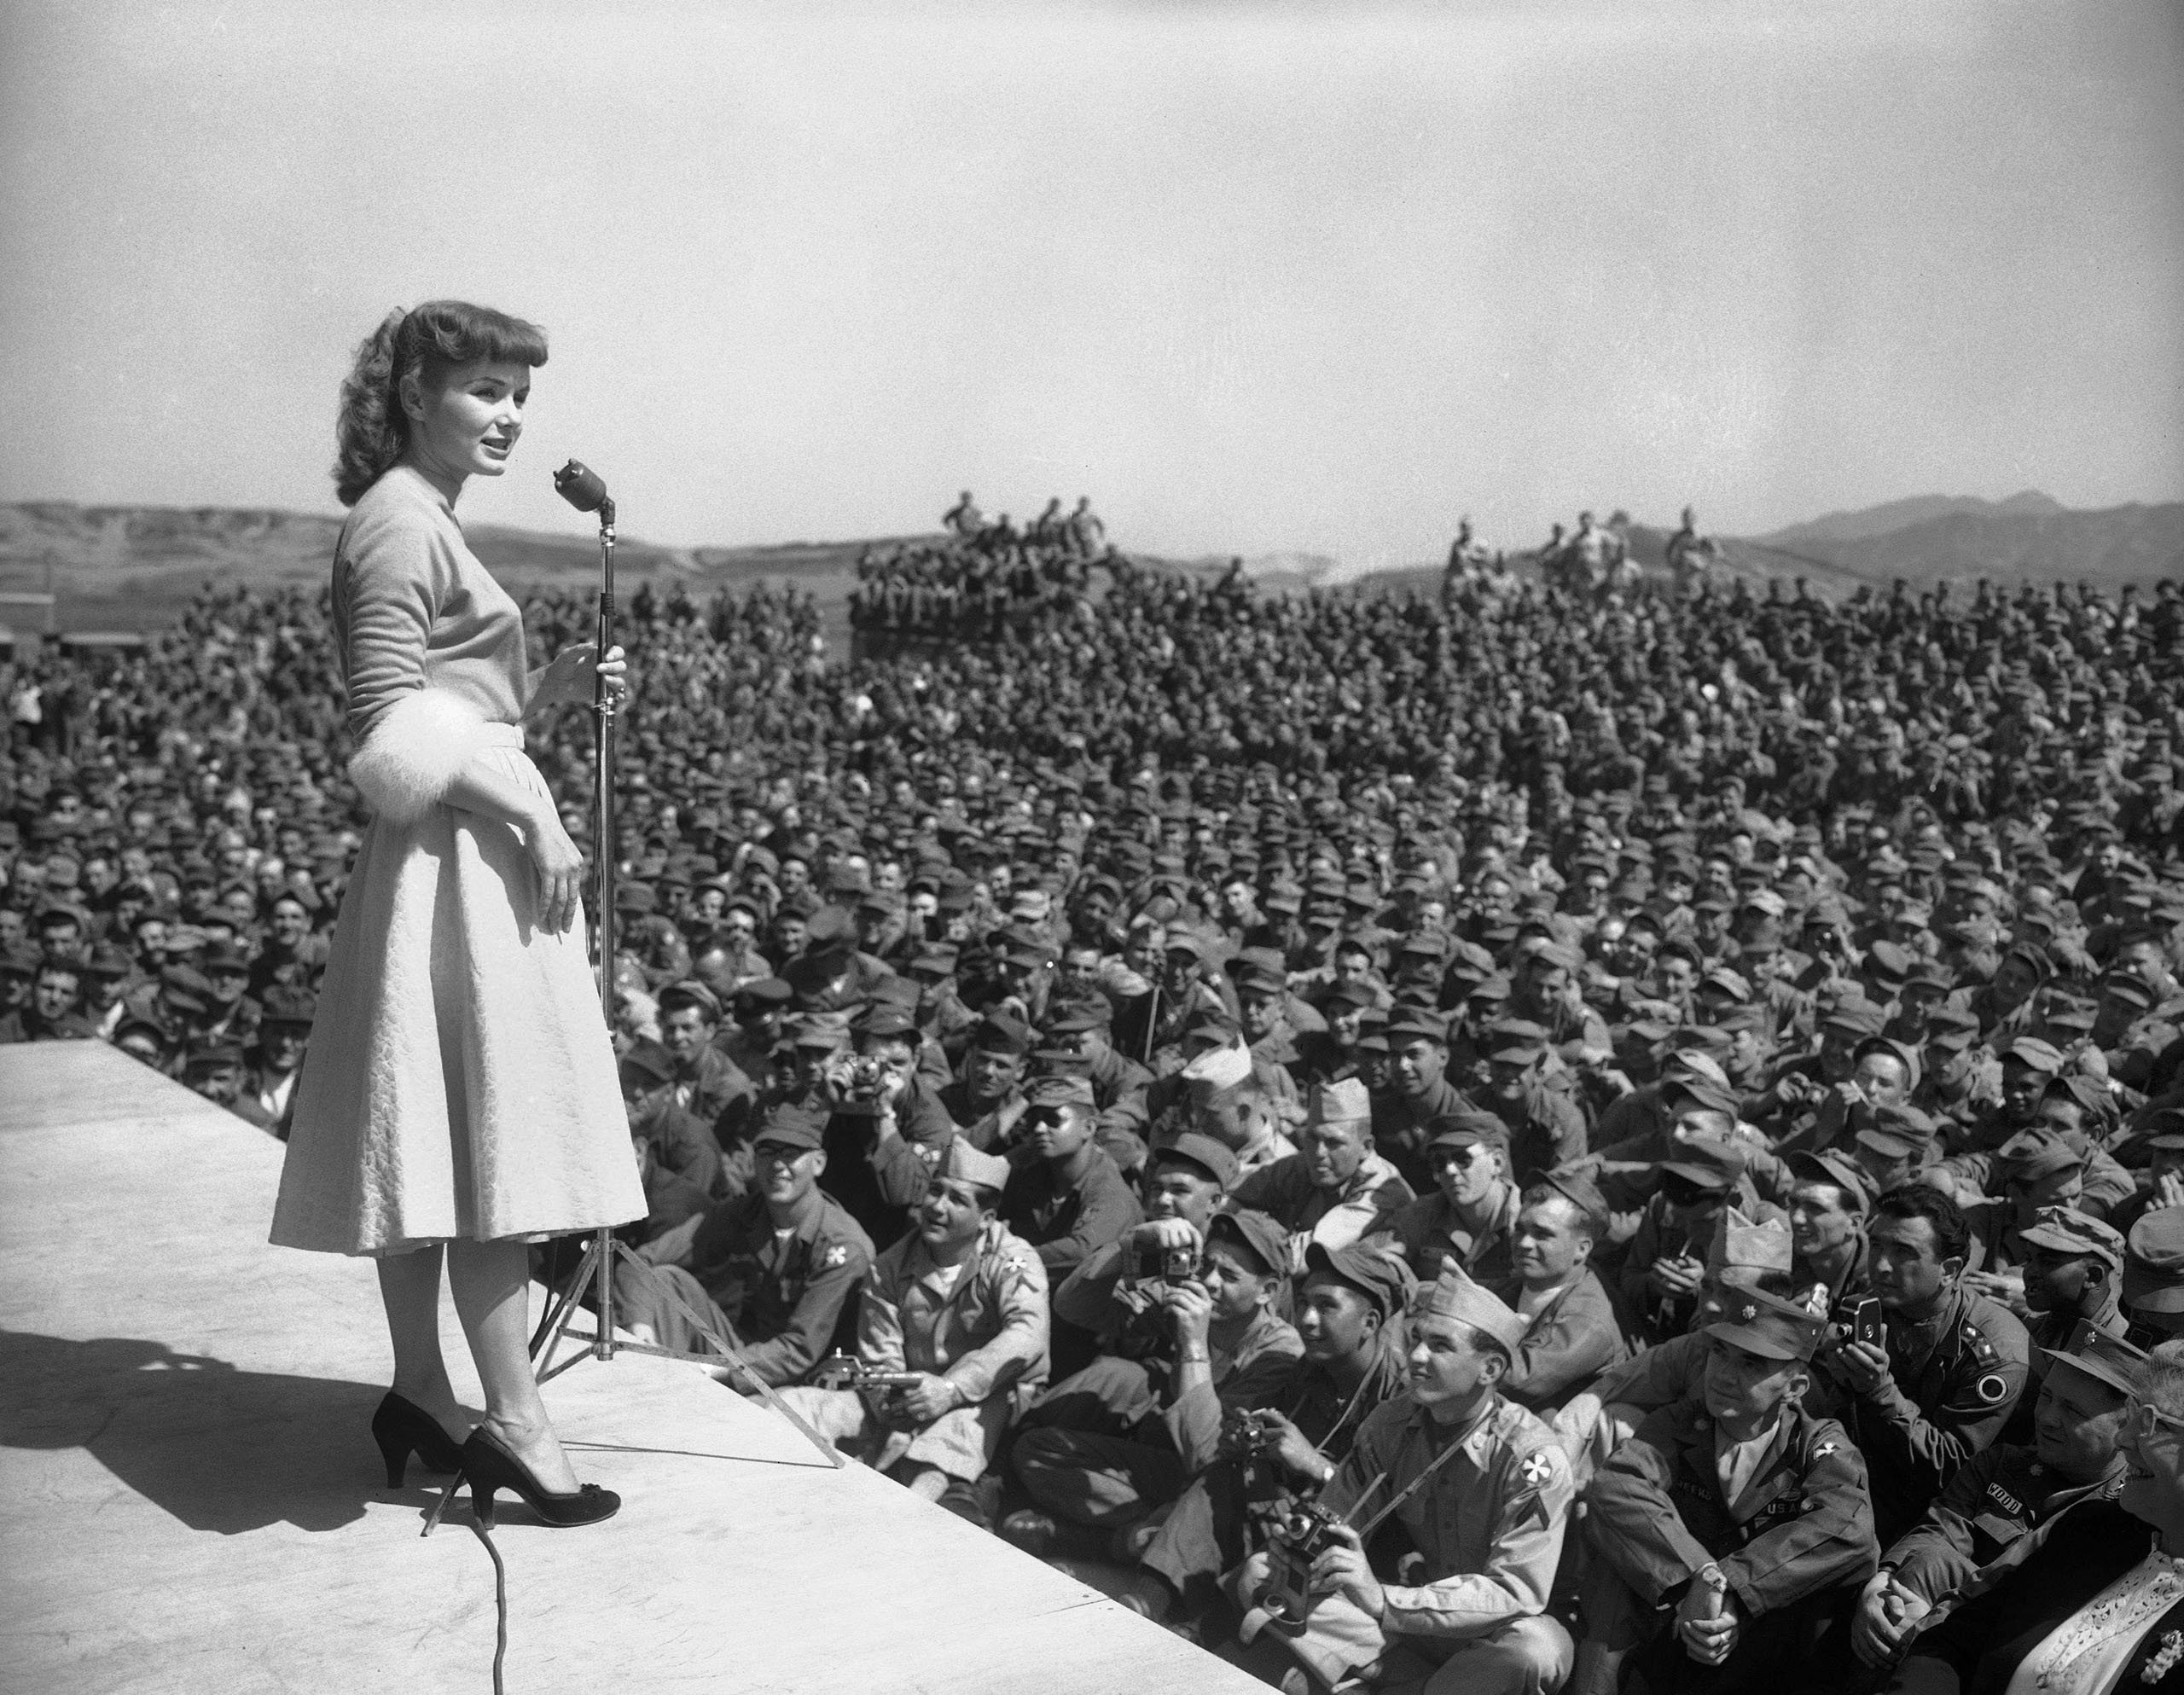 Debbie Reynolds entertains at the 8th Army headquarters in Seoul, South Korea. Reynolds, May 22, 1955.